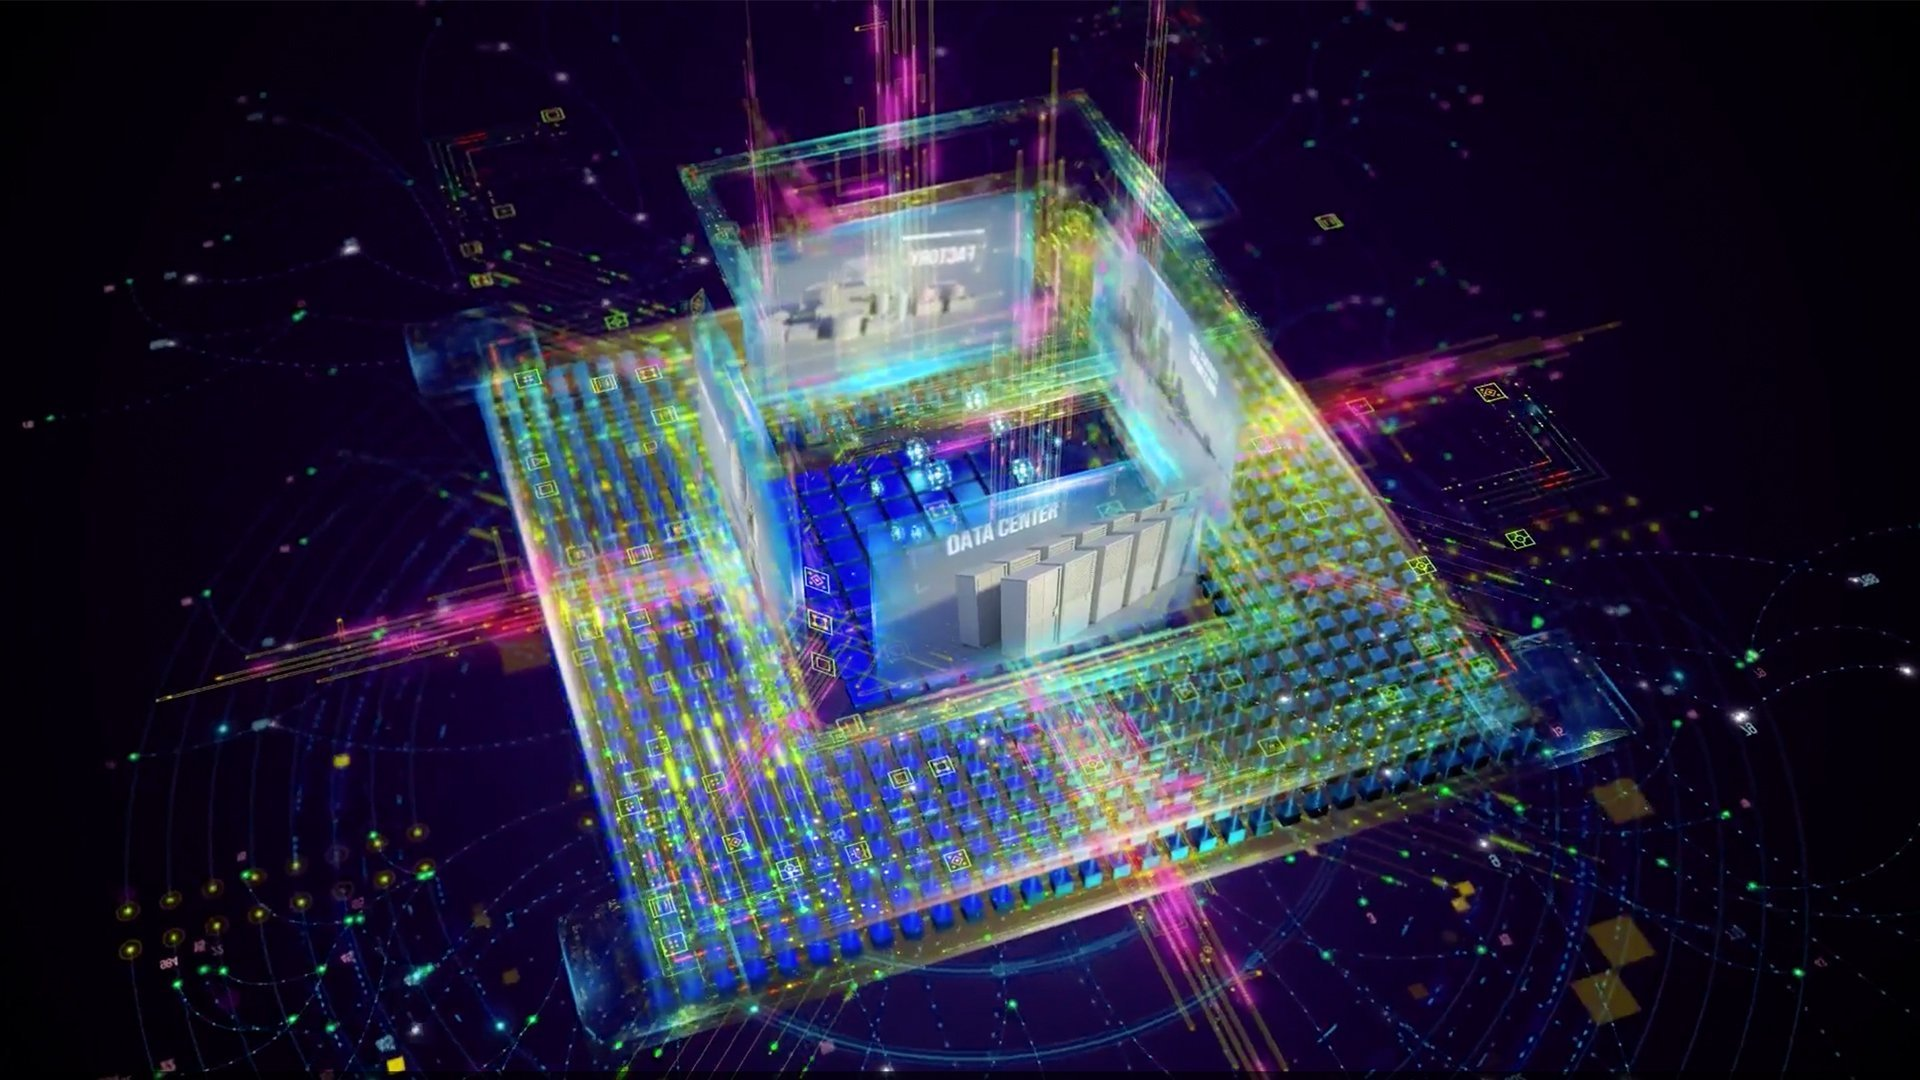 GPUs and CPUs? Understanding How to Choose the Right Processor for Your Workload